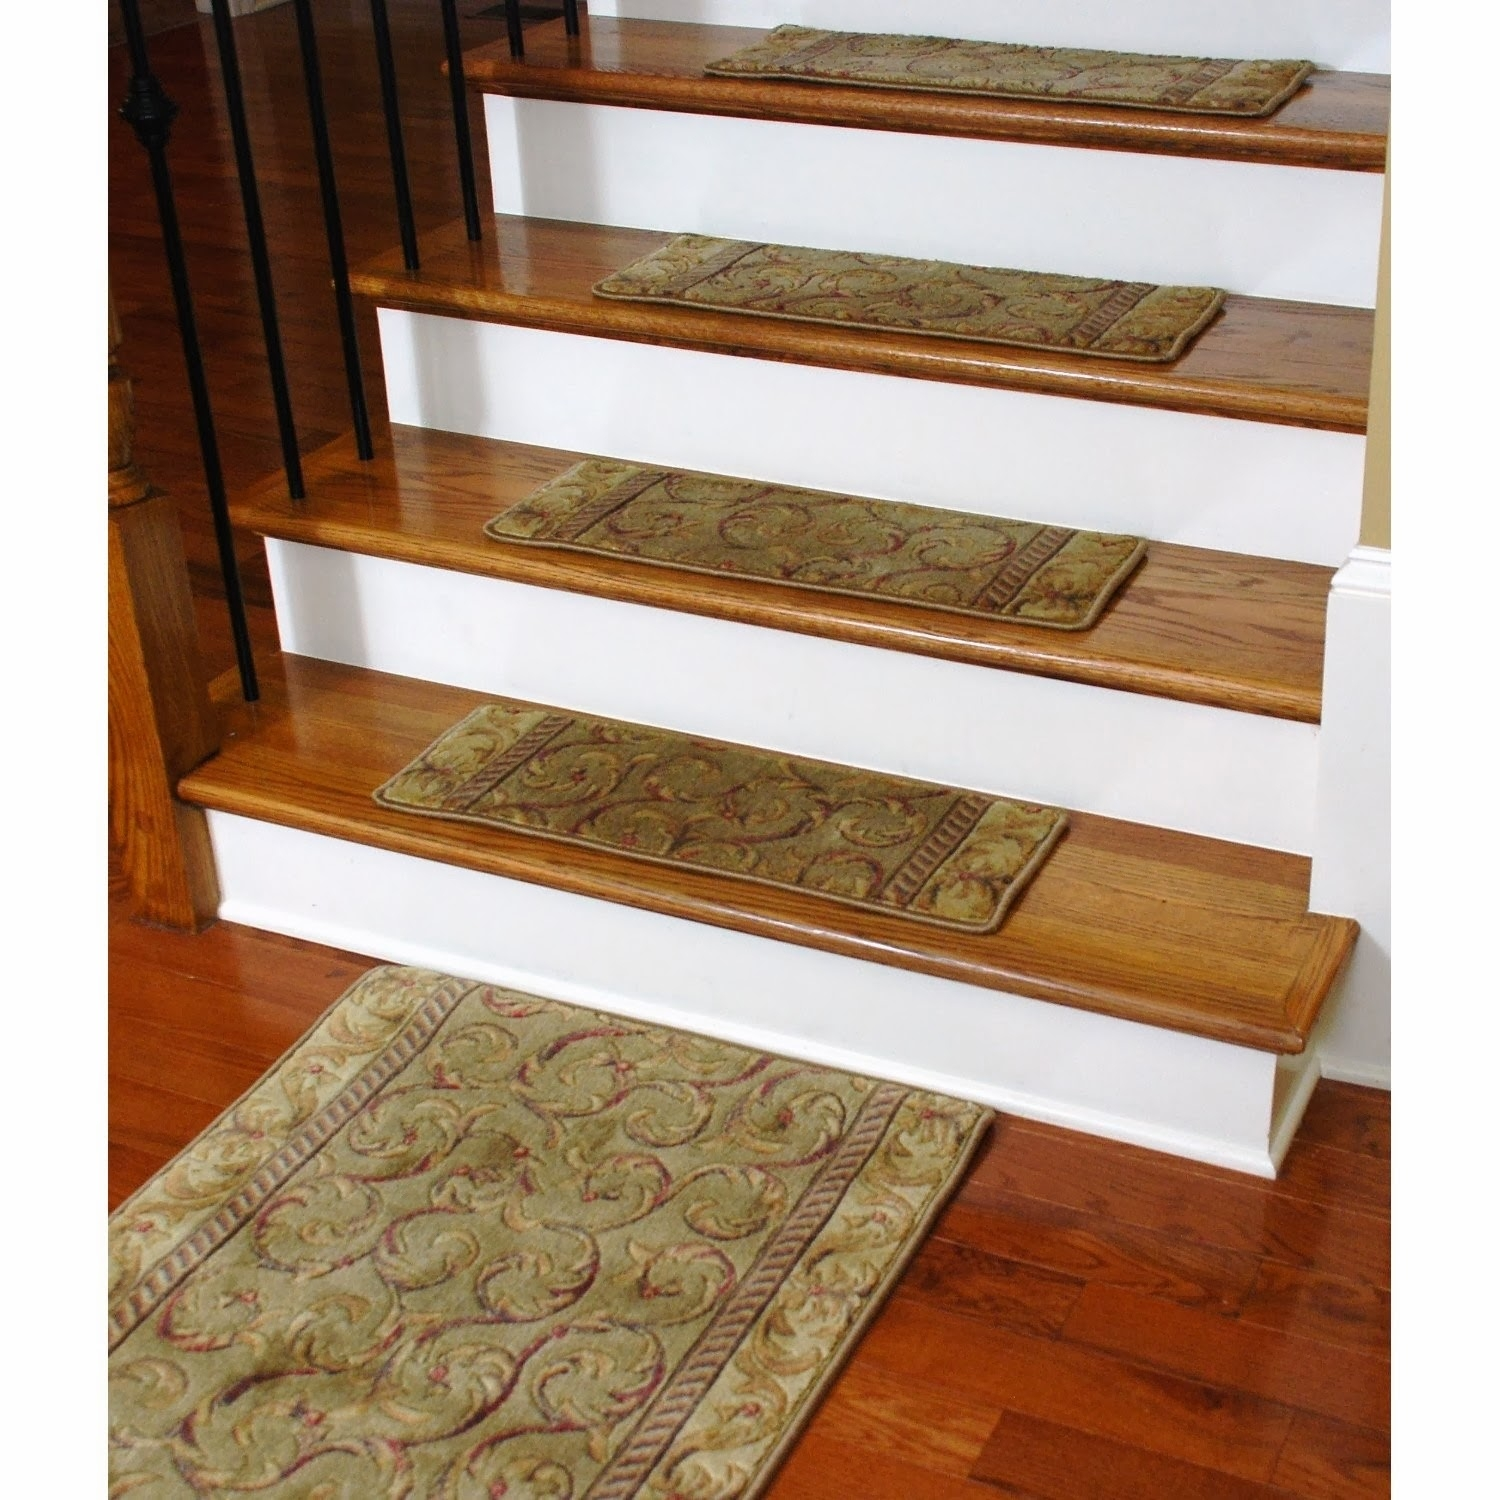 Excellent Carpet Stair Treads With Rug Carpet Stairs Treads And For Carpet Treads For Stairs (View 5 of 15)